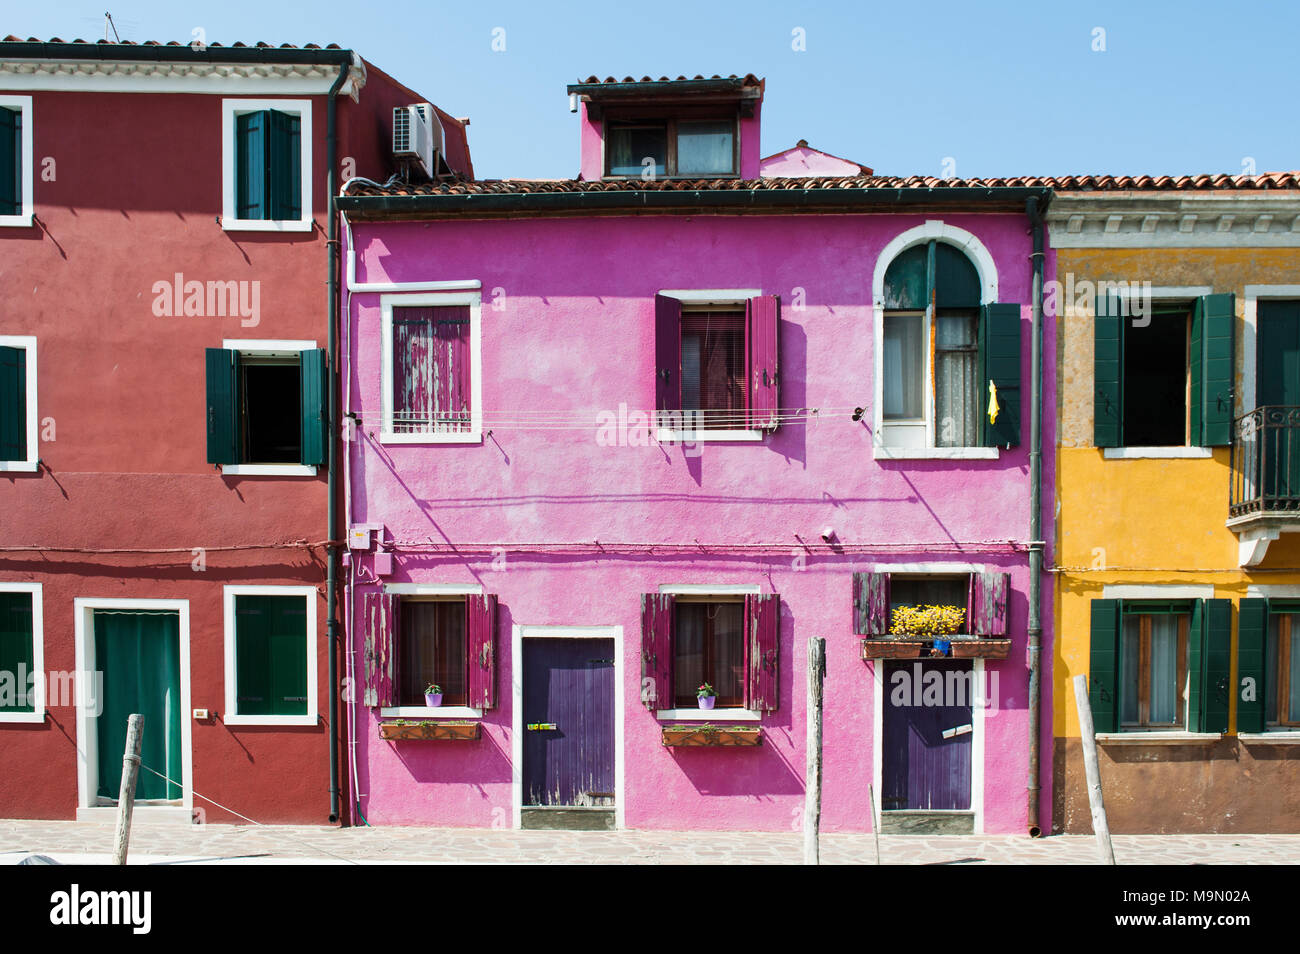 Burano island, Venice, Italy, Europe - typical colorful houses - Stock Image